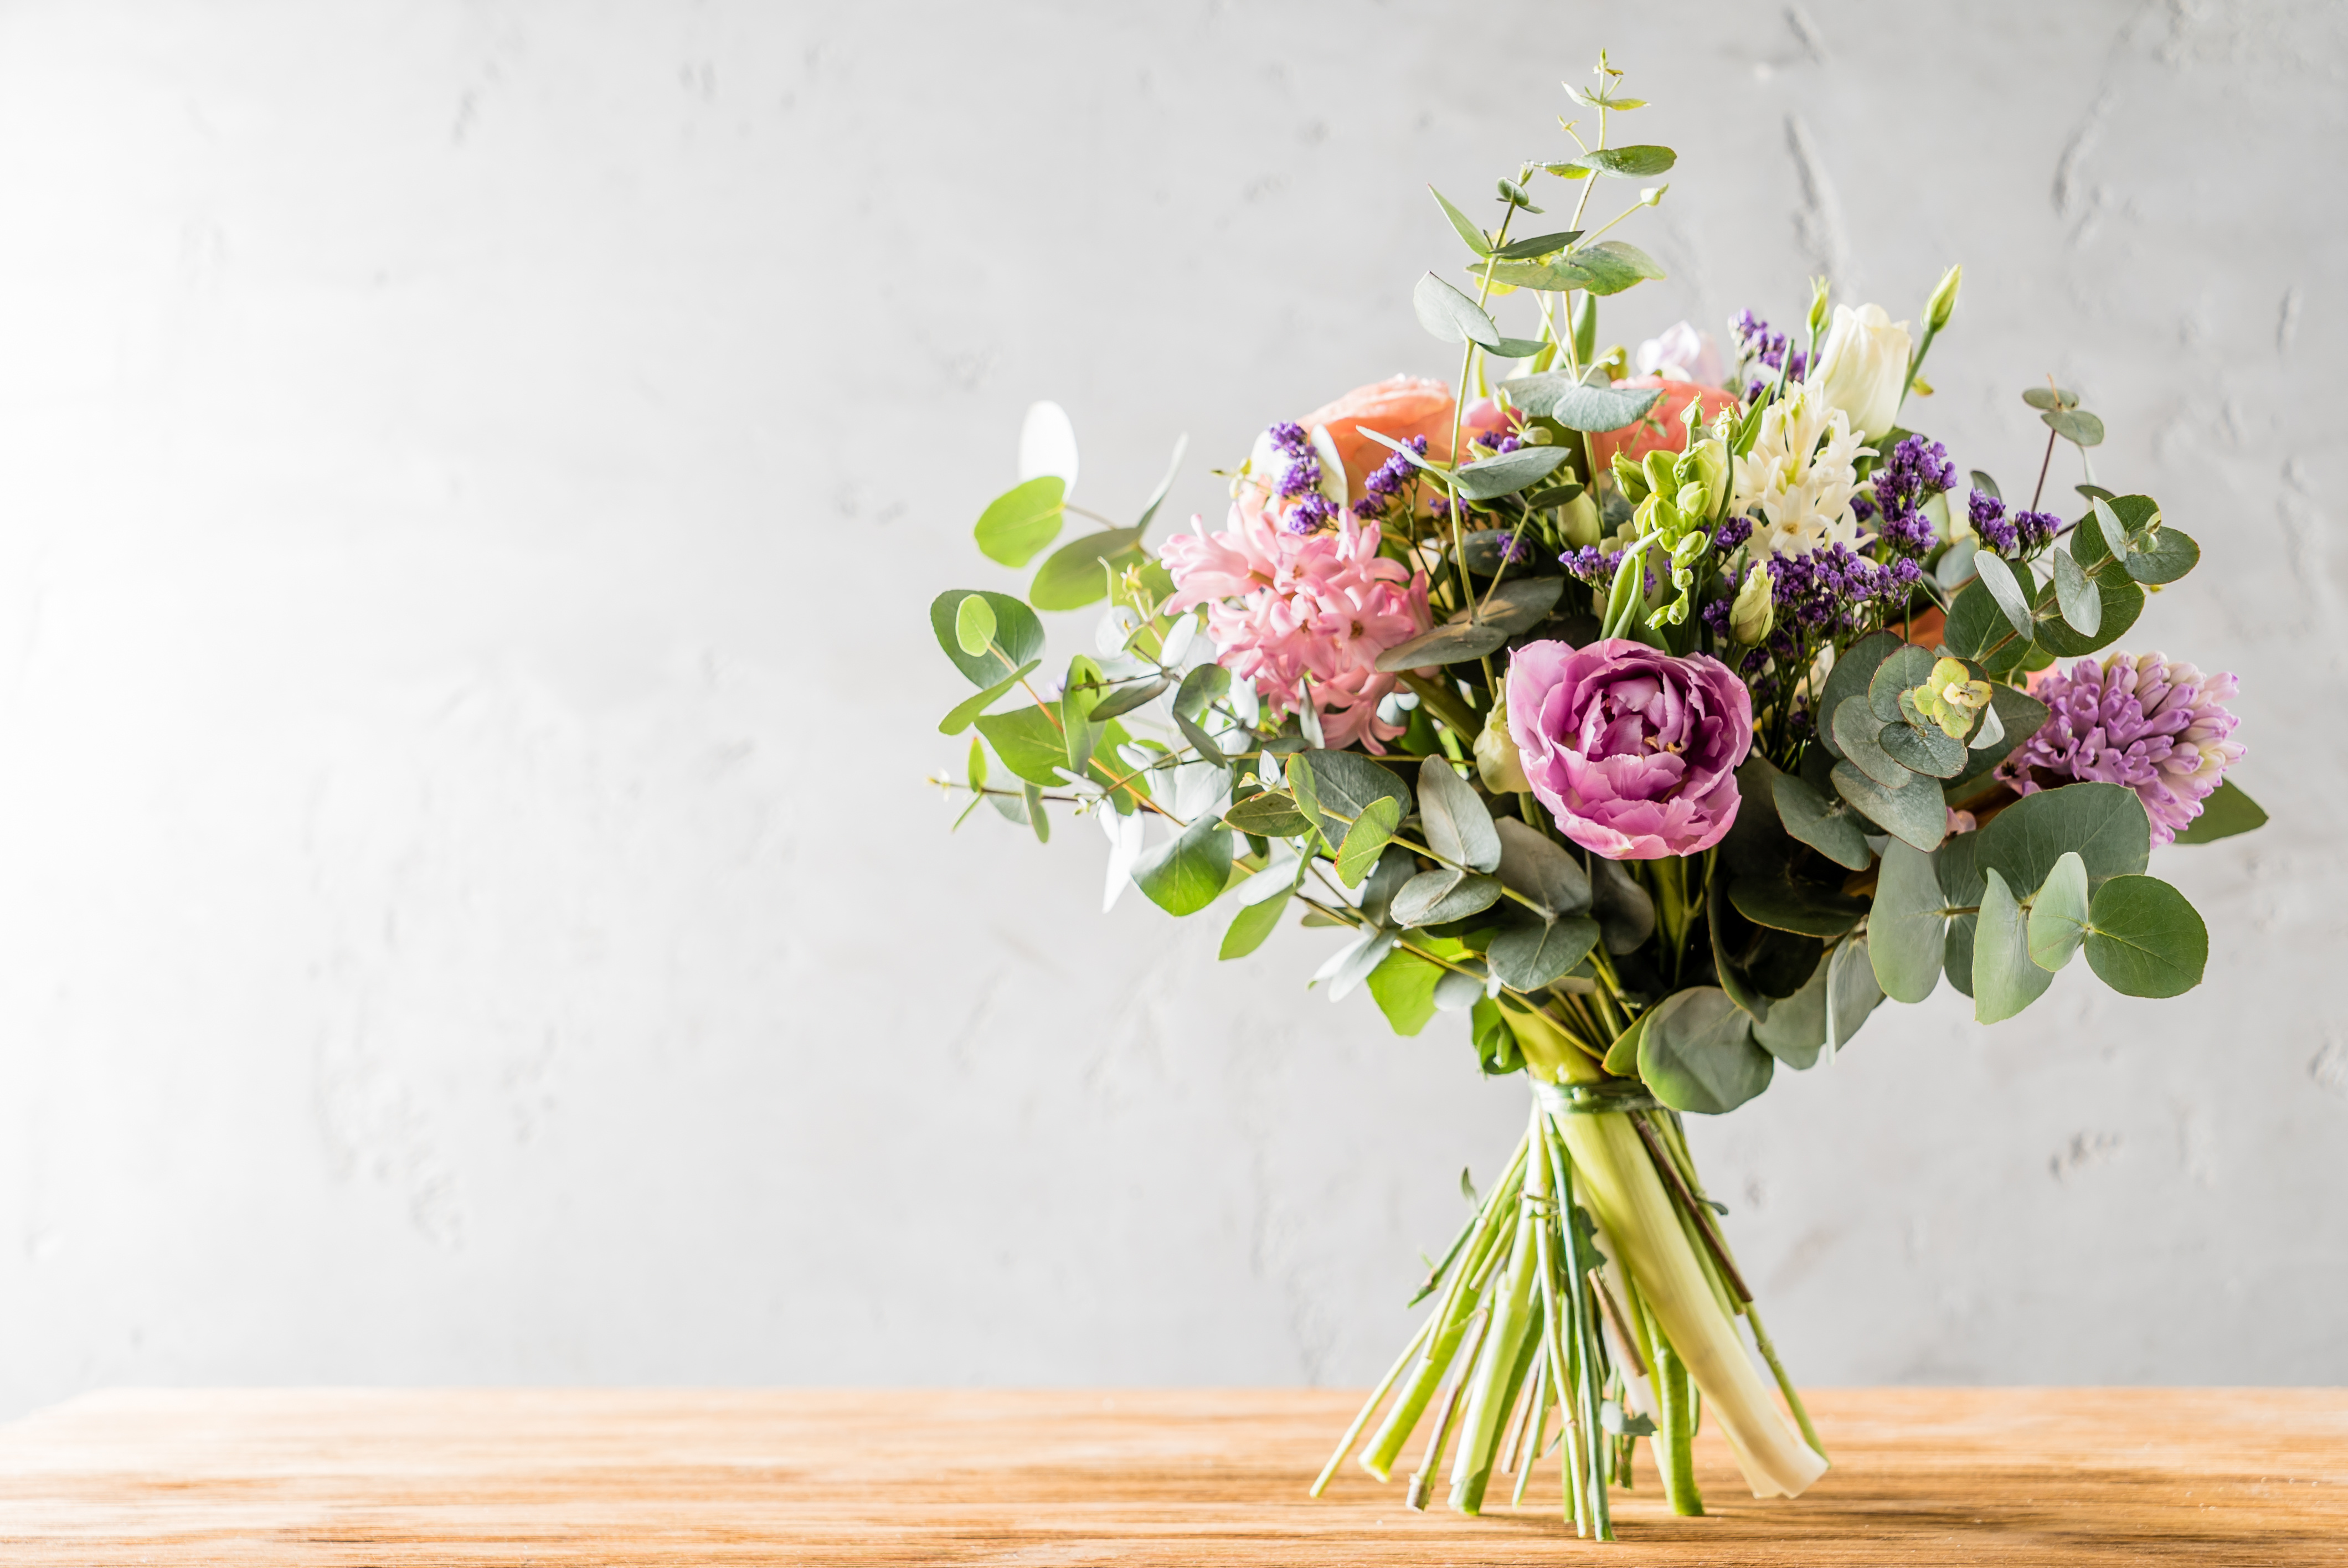 Send Flowers Today - With Bamboo Flowers BambooFlowers